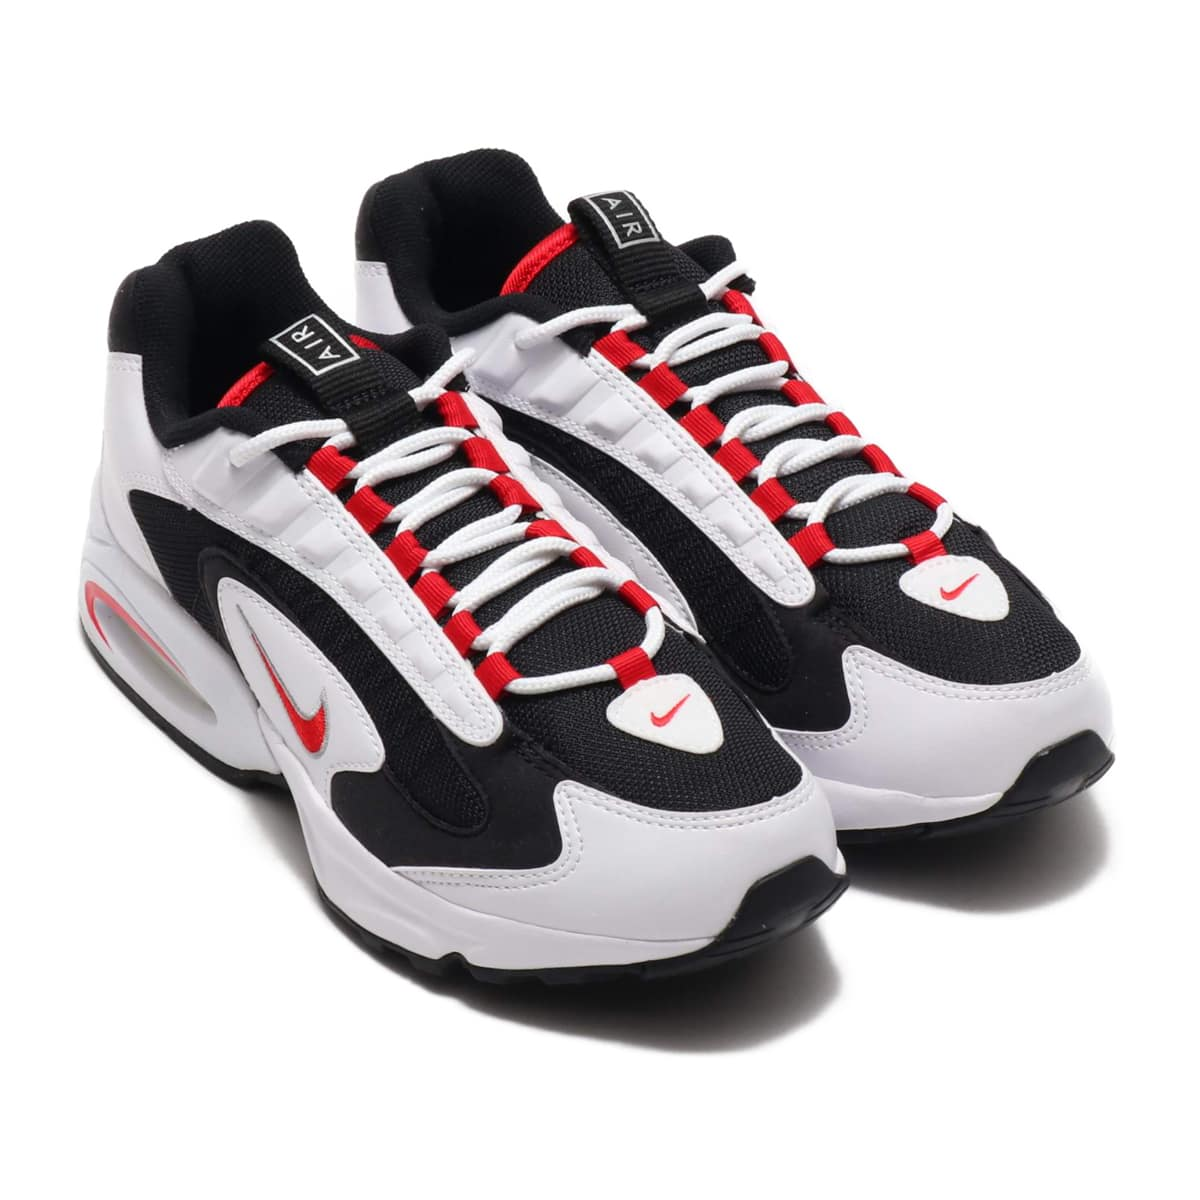 NIKE AIR MAX TRIAX WHITE/UNIVERSITY RED-BLACK-SILVER 19HO-S_photo_large